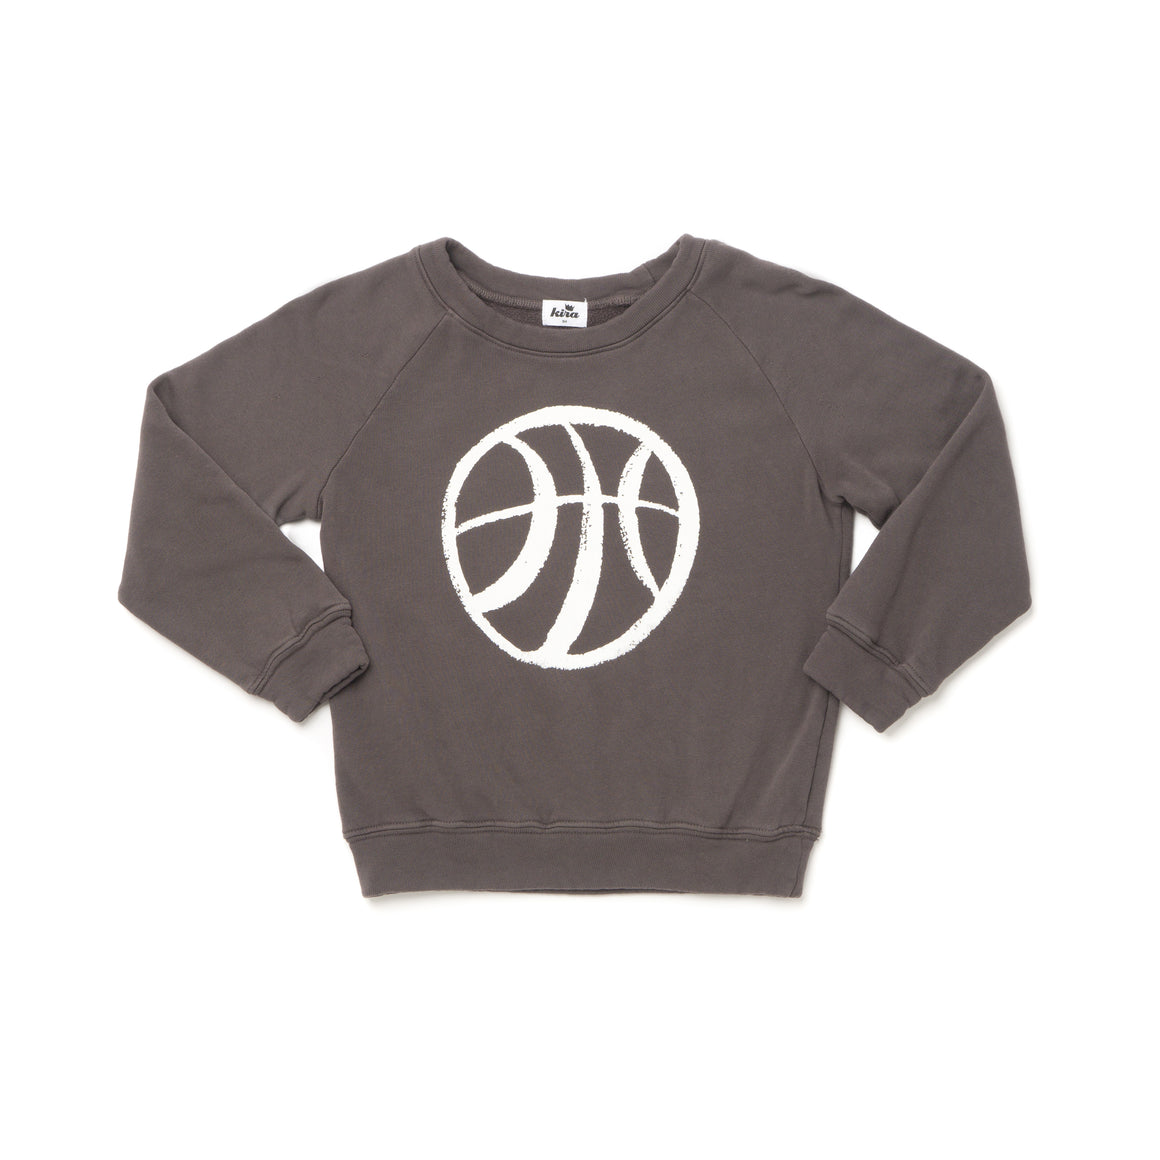 Basketball Graphic Raglan Sweatshirt, Slate Grey